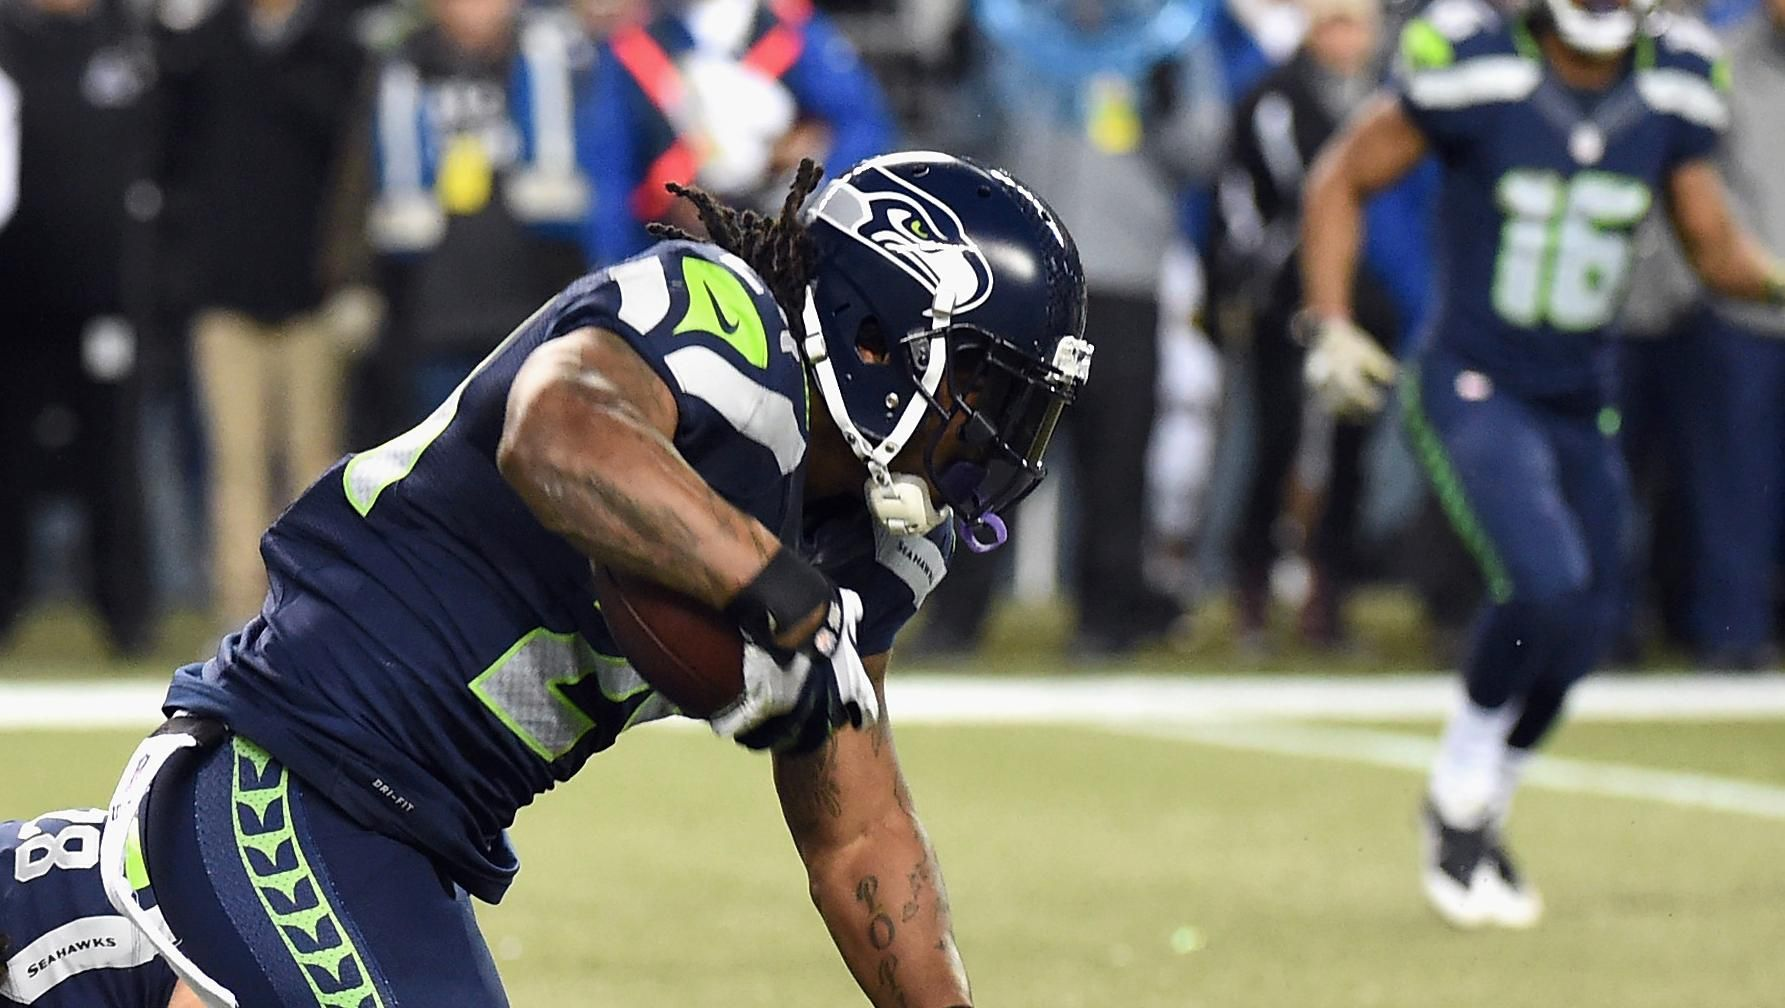 Golic: If Lynch says he's ready, he's going to play